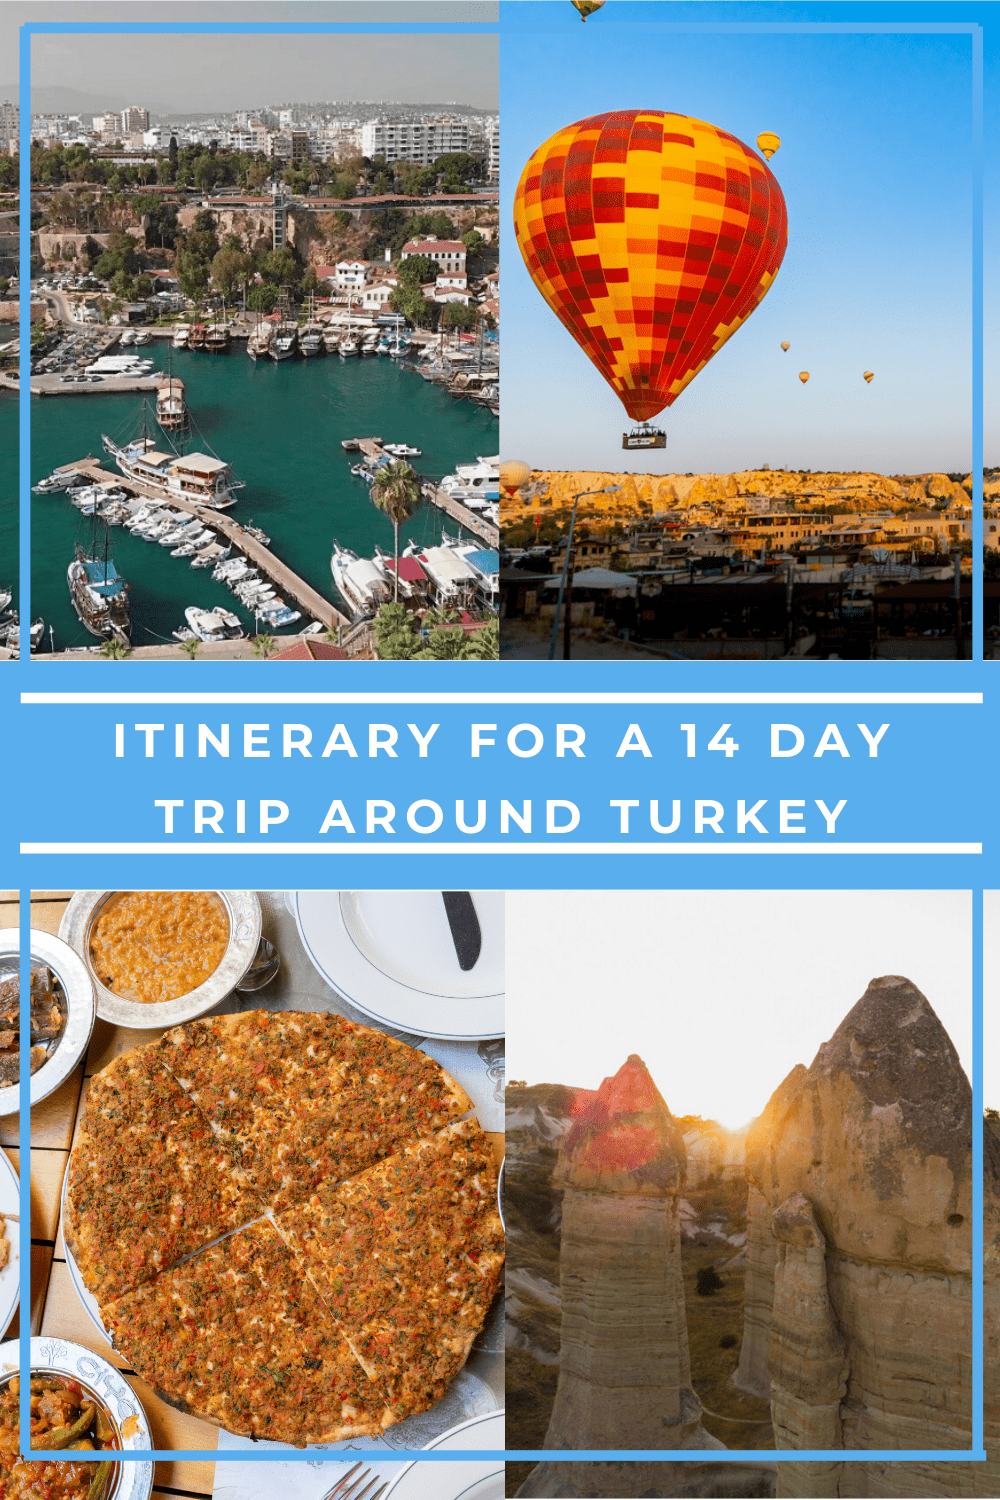 Itinerary for a 14 day Trip Around Turkey